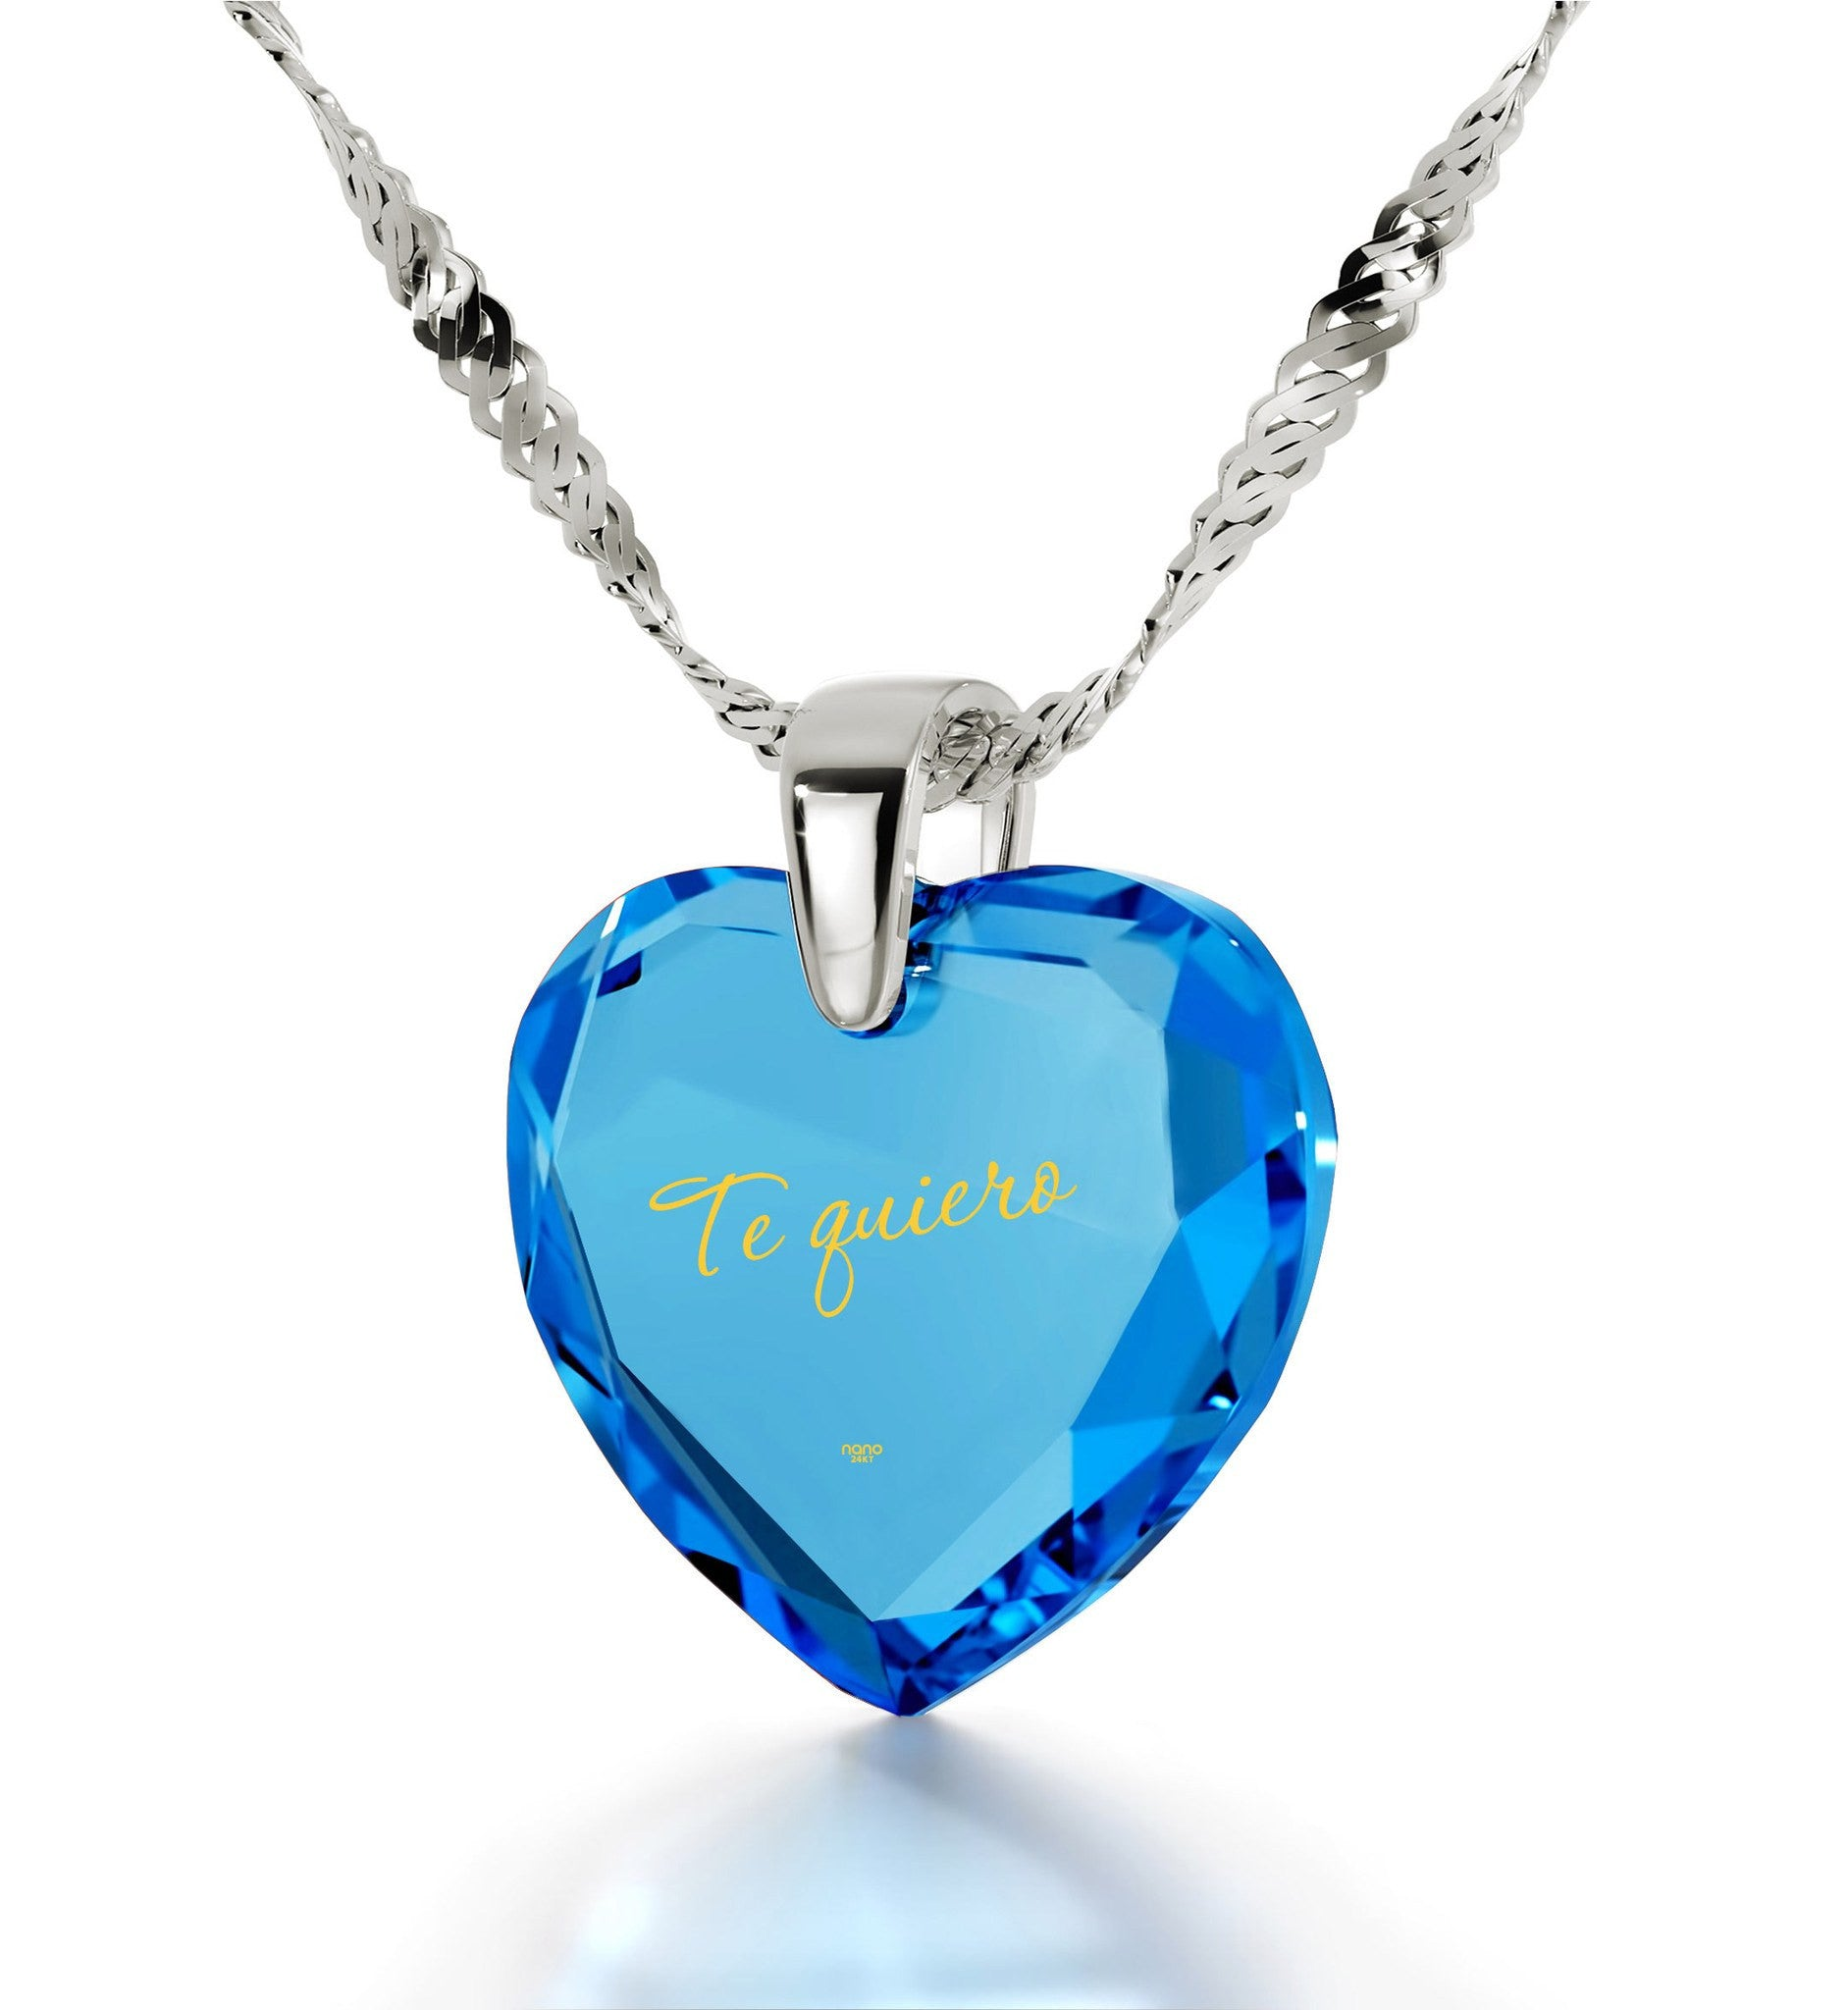 "Heart Necklaces for Girlfriend,""Te Quiero"",CZ Jewelry, Valentines Day Ideas for Her, Nano"